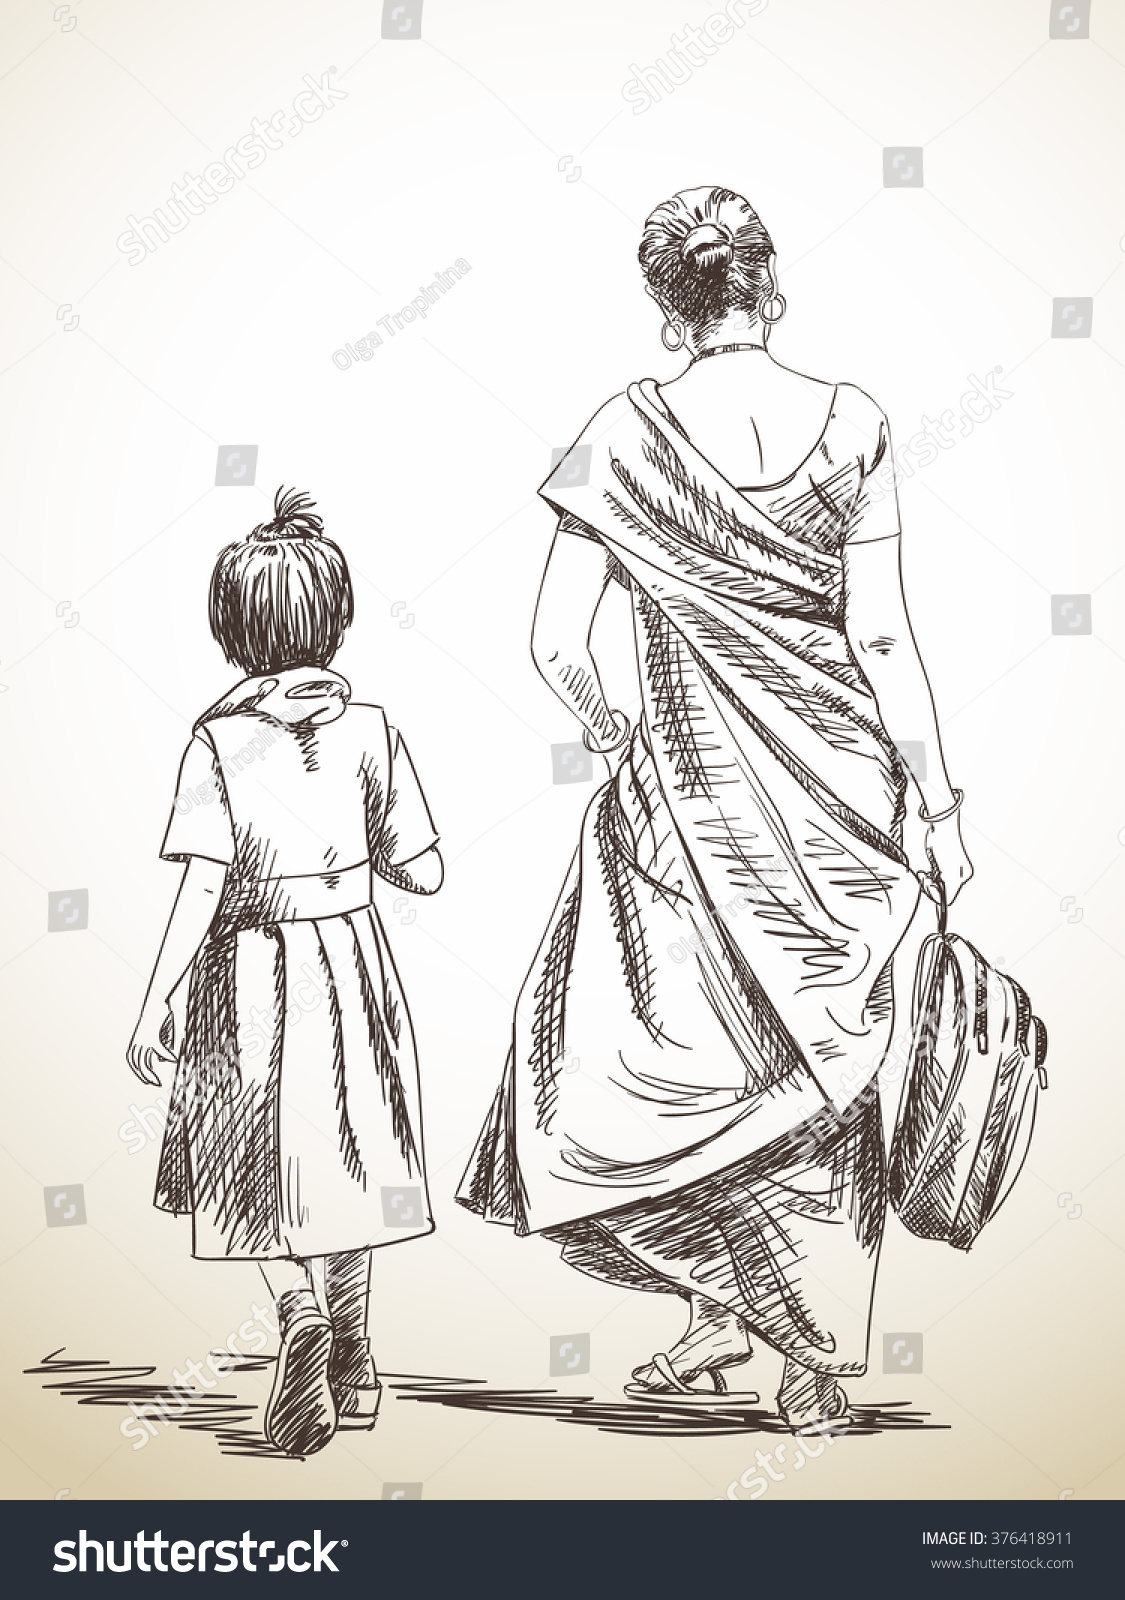 Sketch of walking mother and daughter from school hand drawn illustration